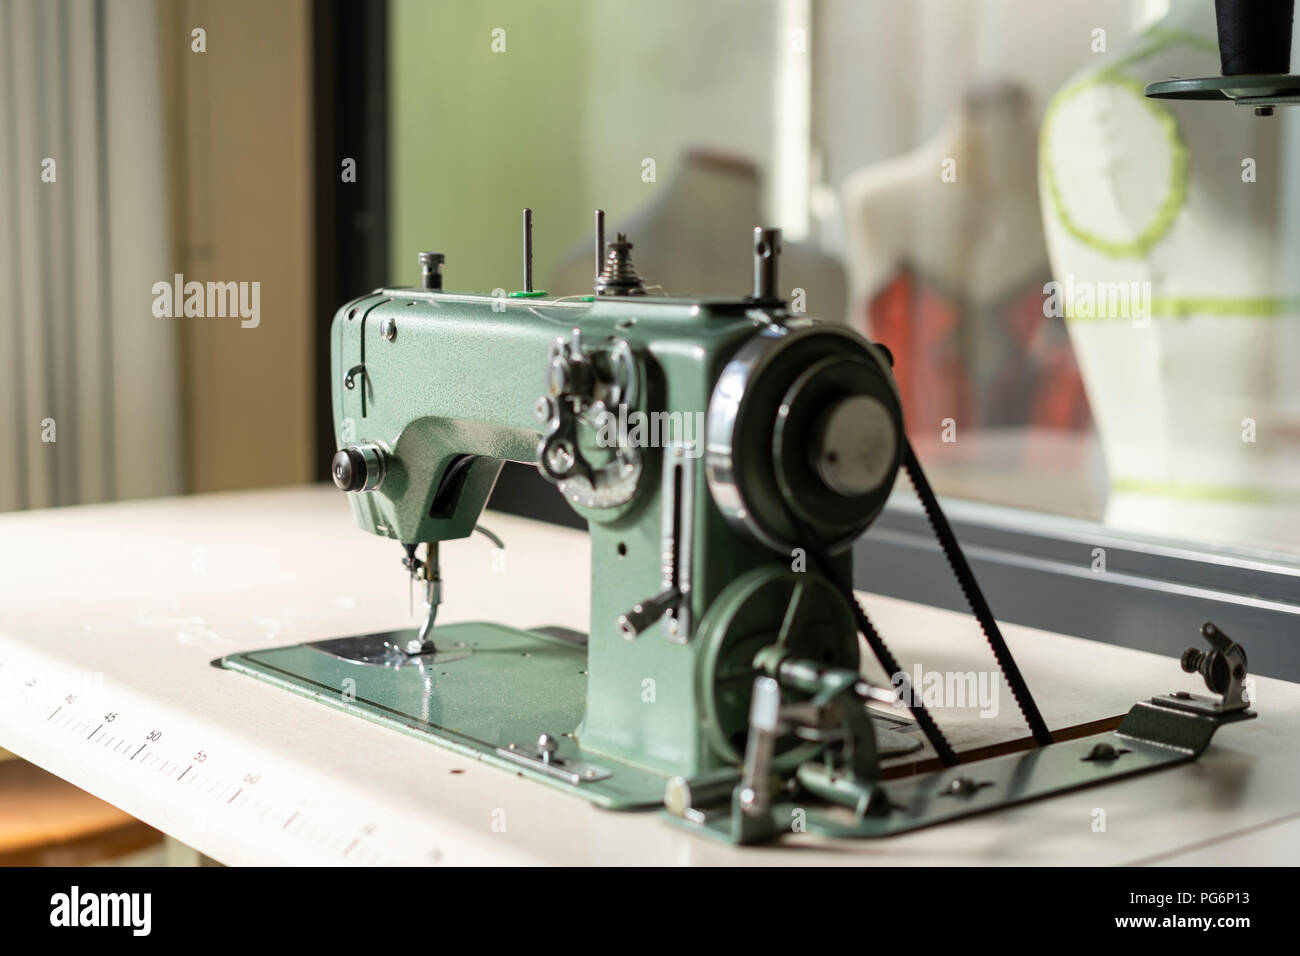 Sewing machine models in fashion designer's studio - Stock Image